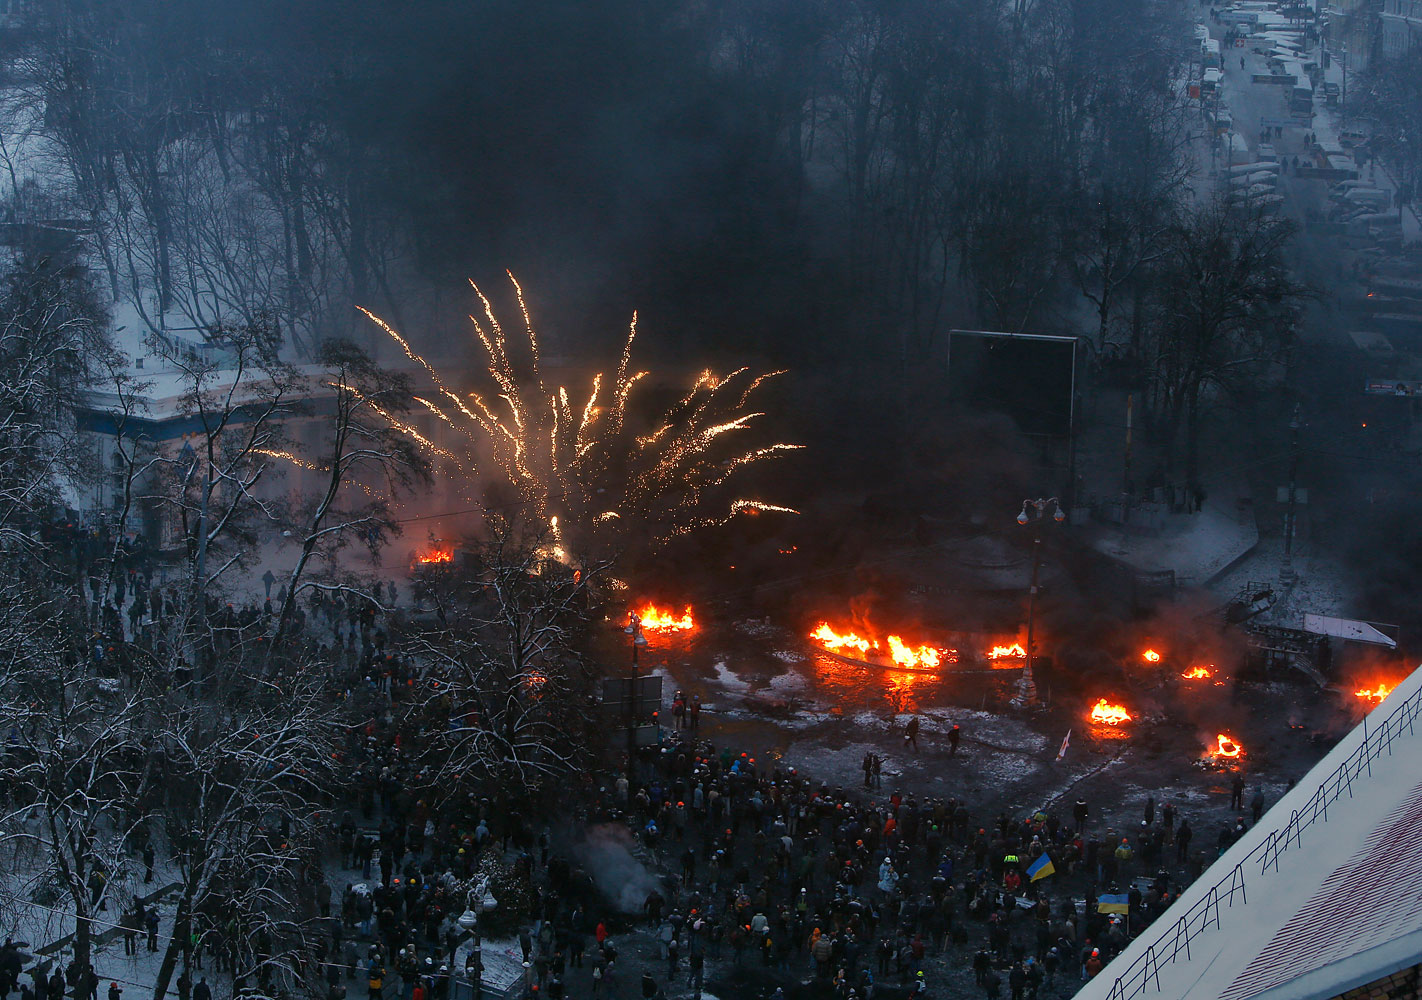 Tires burn in the street, set alight by protesters in clashes with police in central Kiev, Jan. 22, 2014.